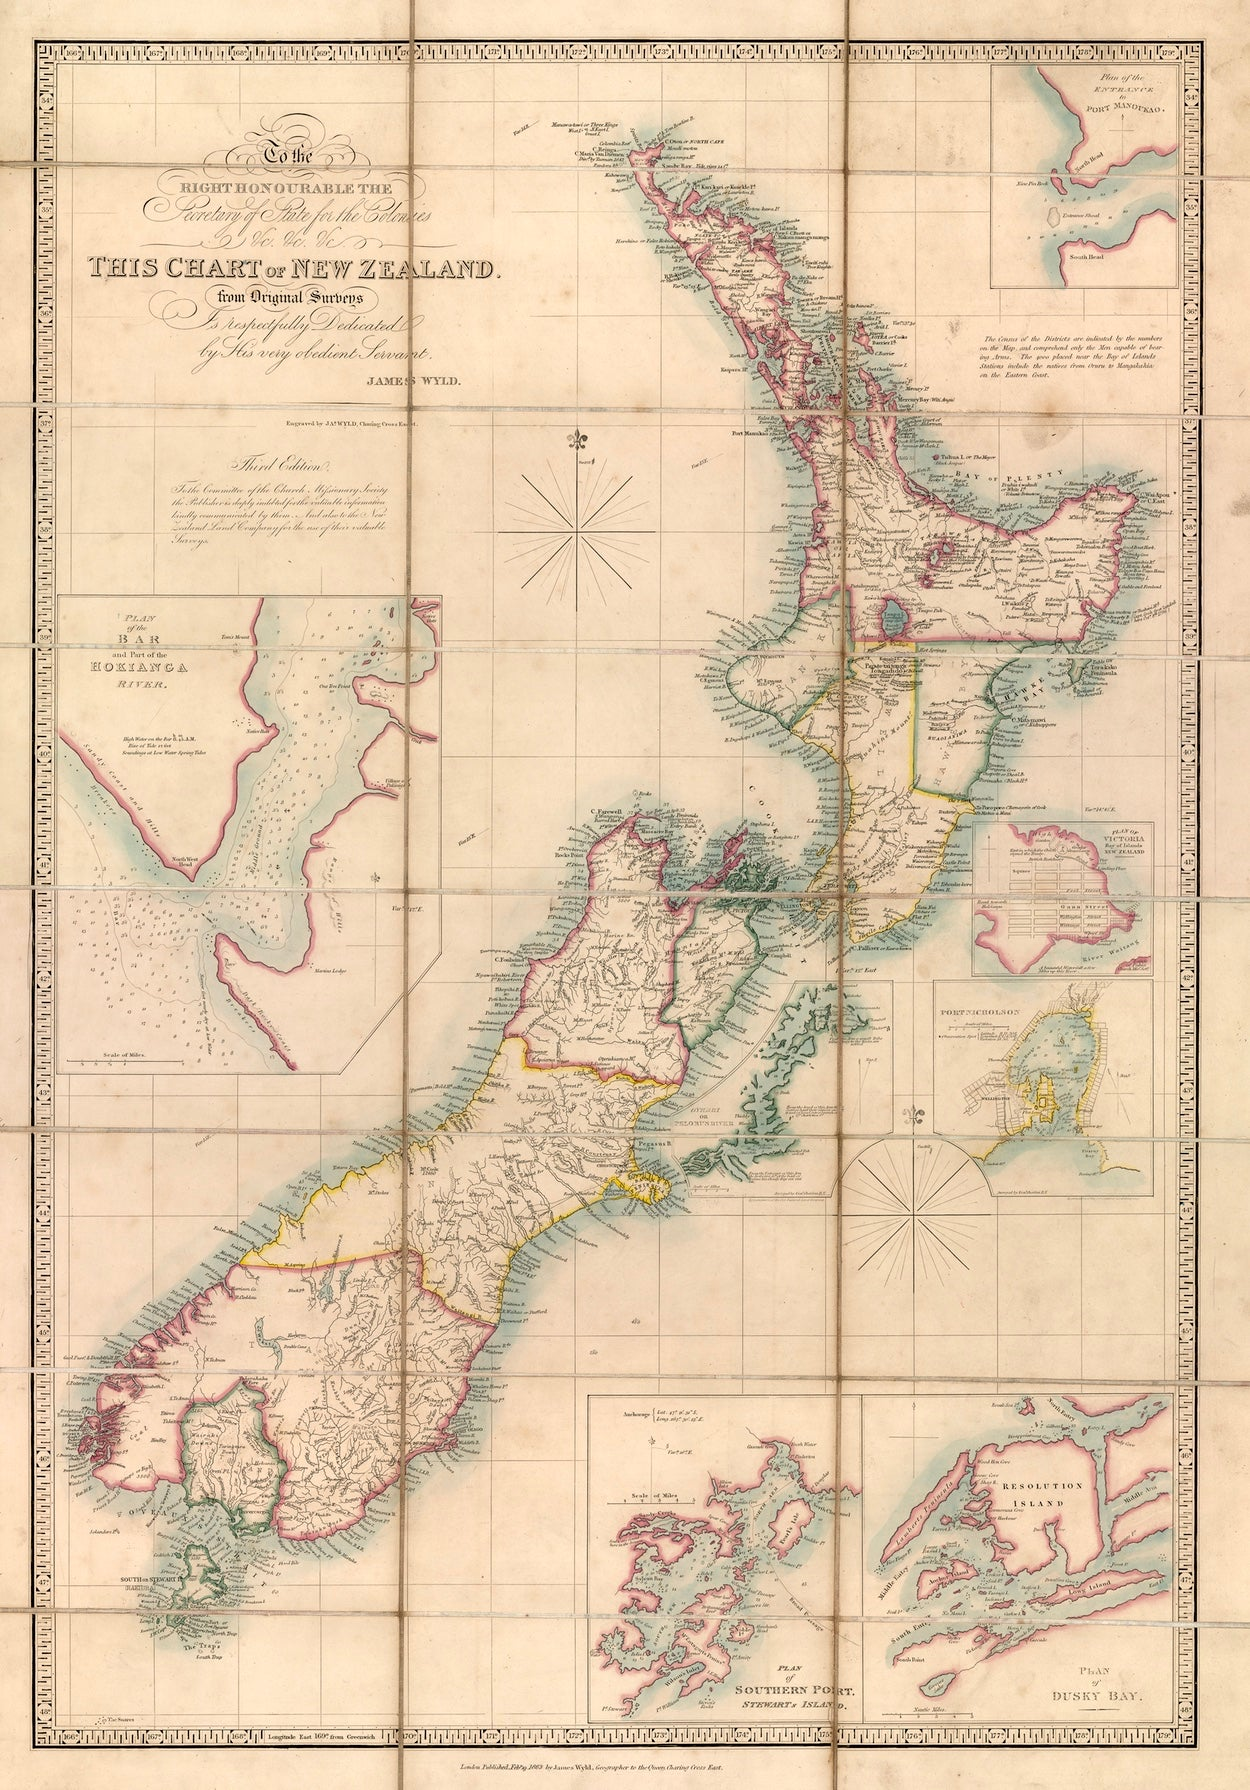 1863 Wyld Map of New Zealand